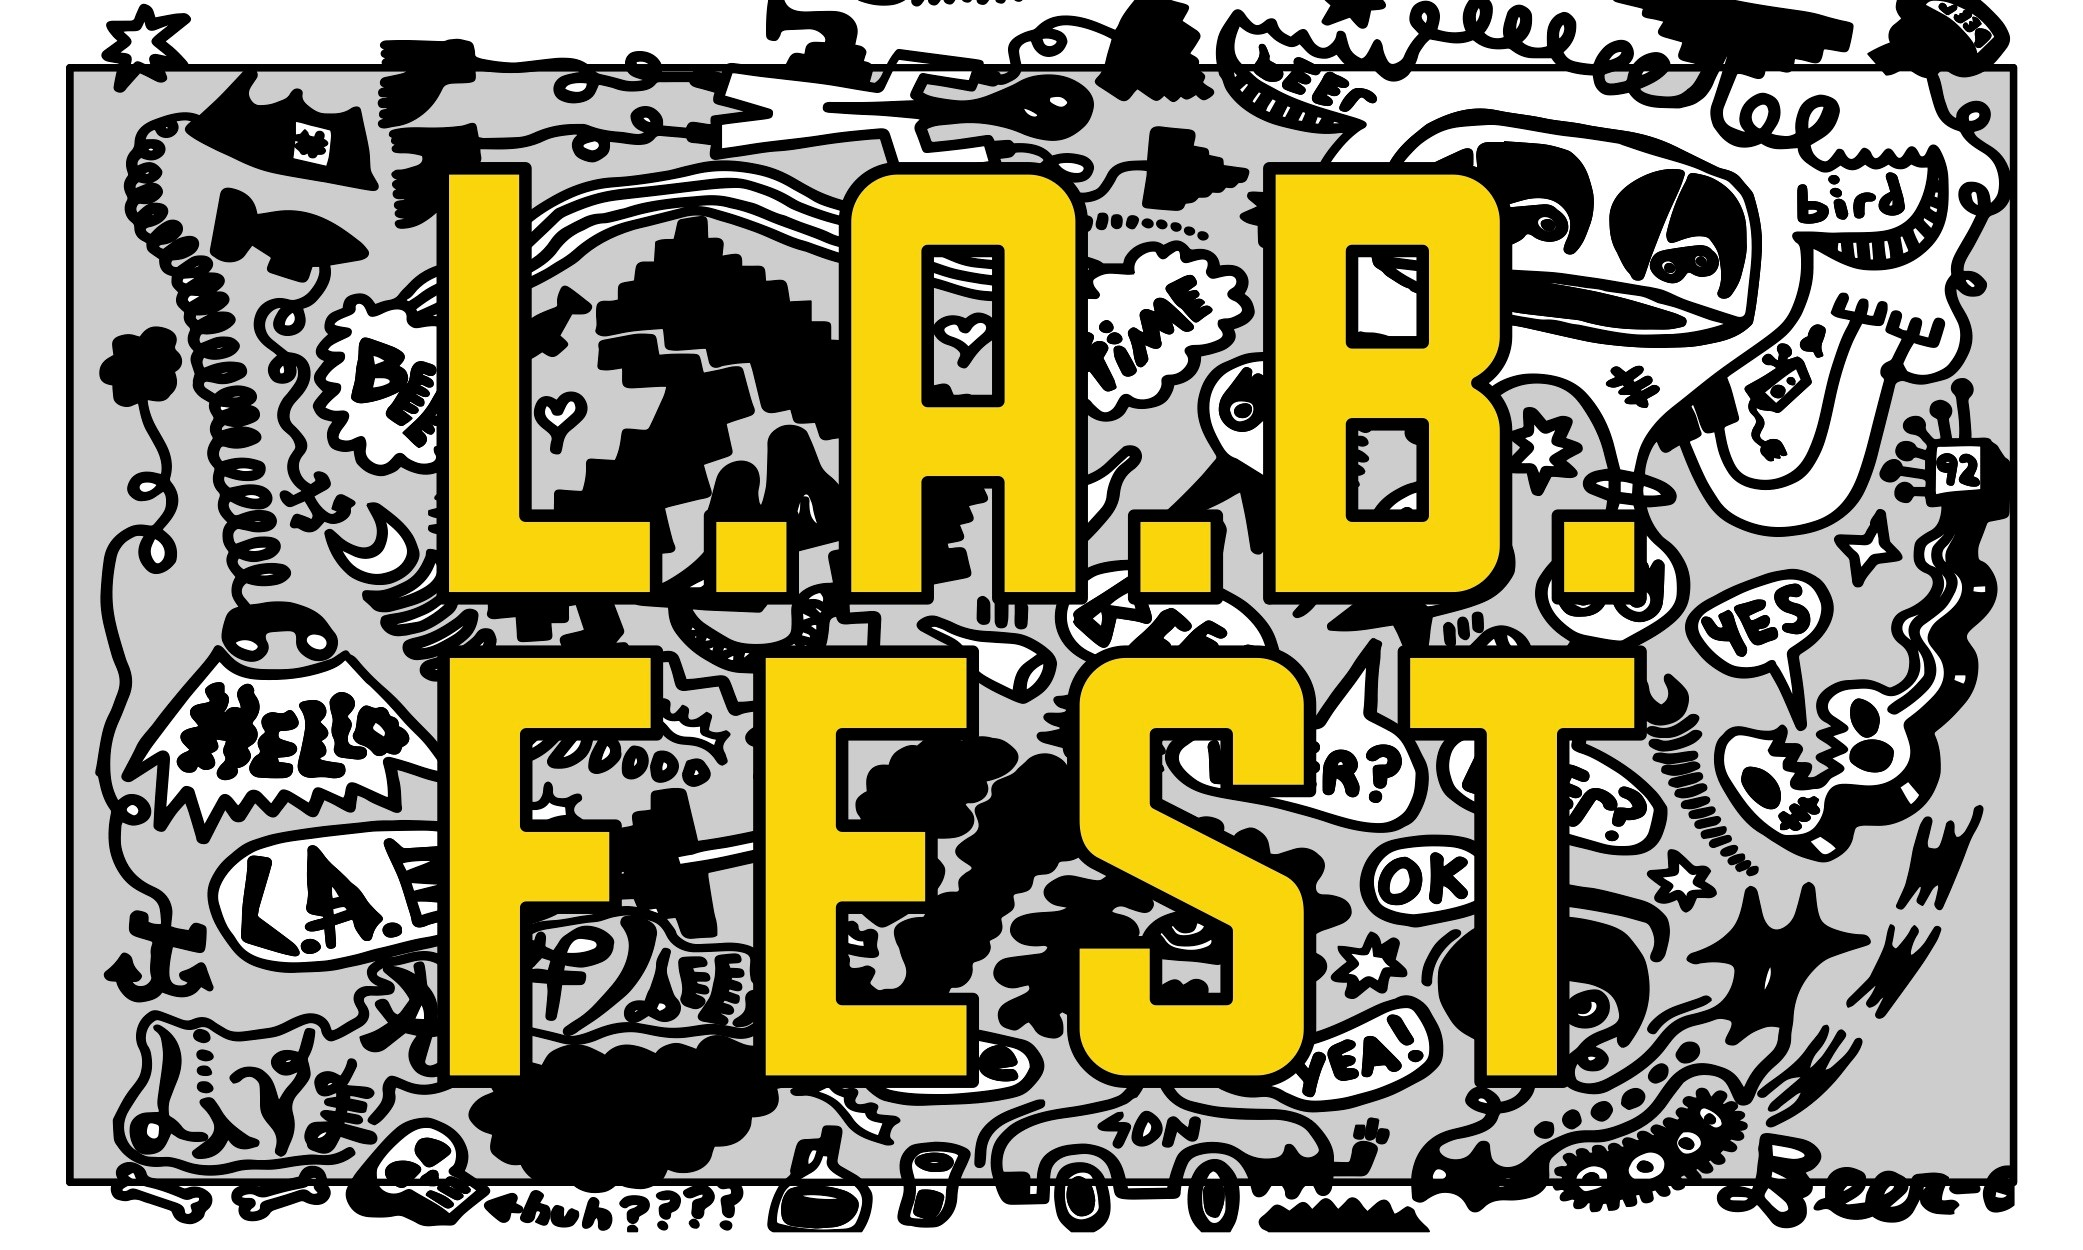 Industrial Arts Brewing & GARNER Arts Center Present L.A.B. Fest   Live Art & Beer May 18 & 19 2019 - Saturday 2-6pm; Sunday Noon - 4pm  A weekend of collaborative art making & beer brewing on 14 acres of historic grounds. Featuring 40 breweries, performance troupes, acrobats and installations.   www.labfestny.com